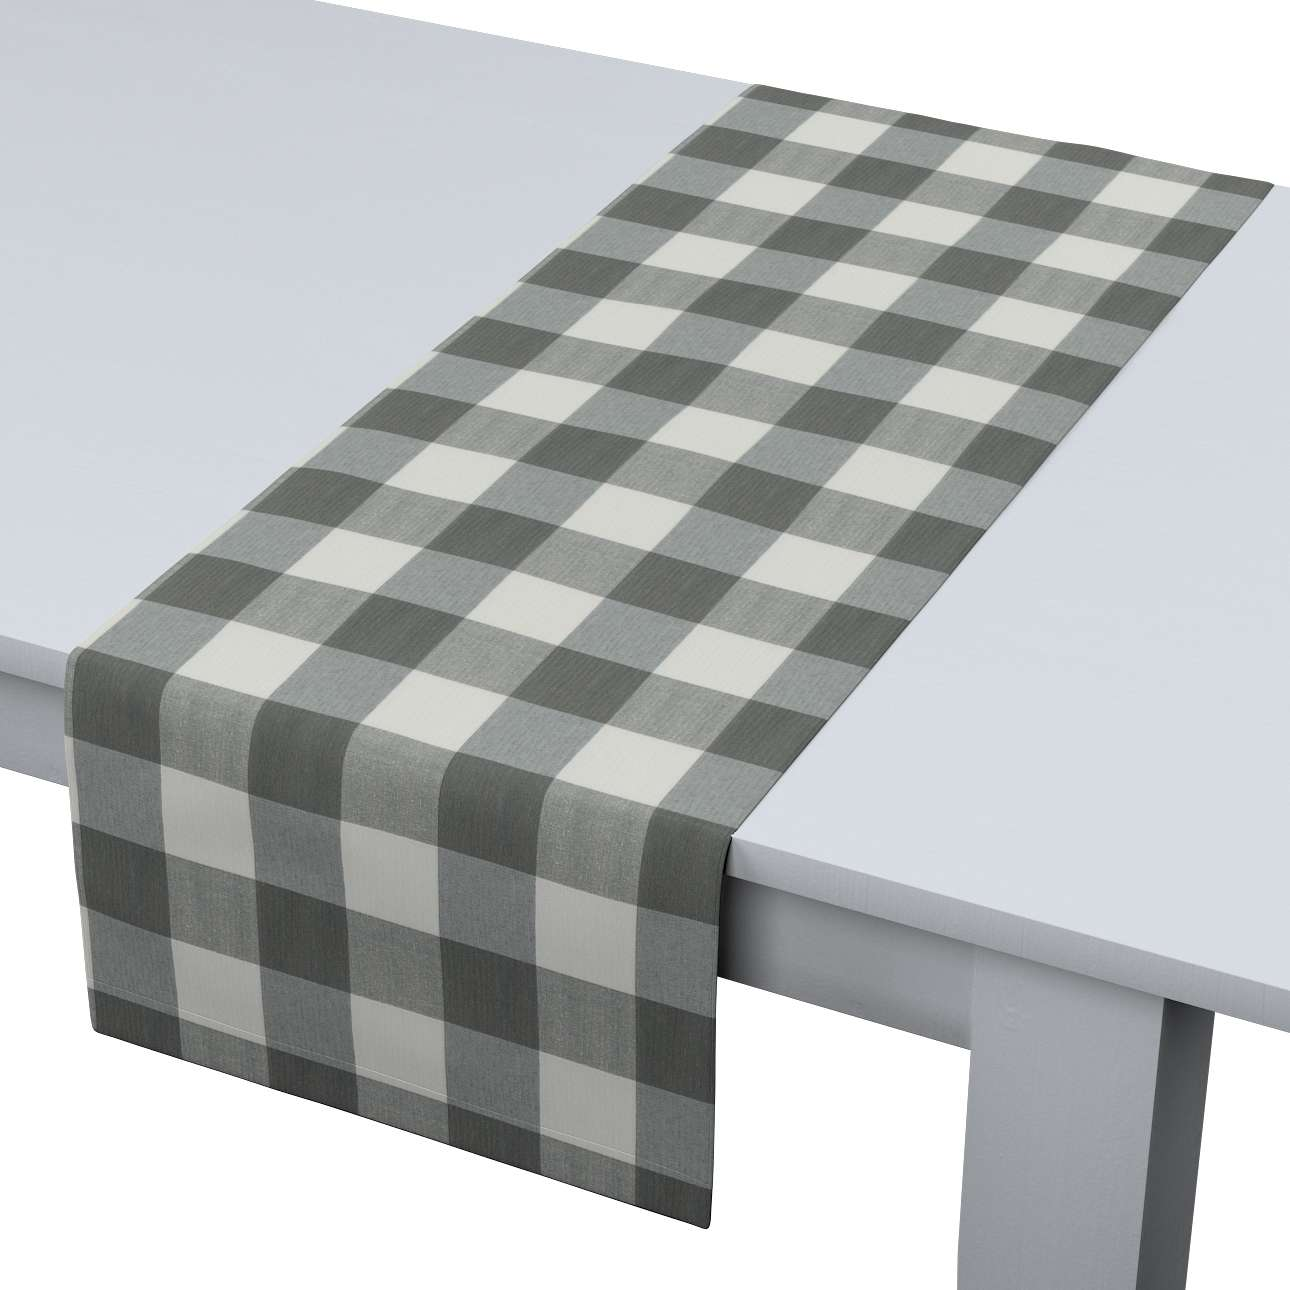 Table runner in collection Quadro, fabric: 136-13